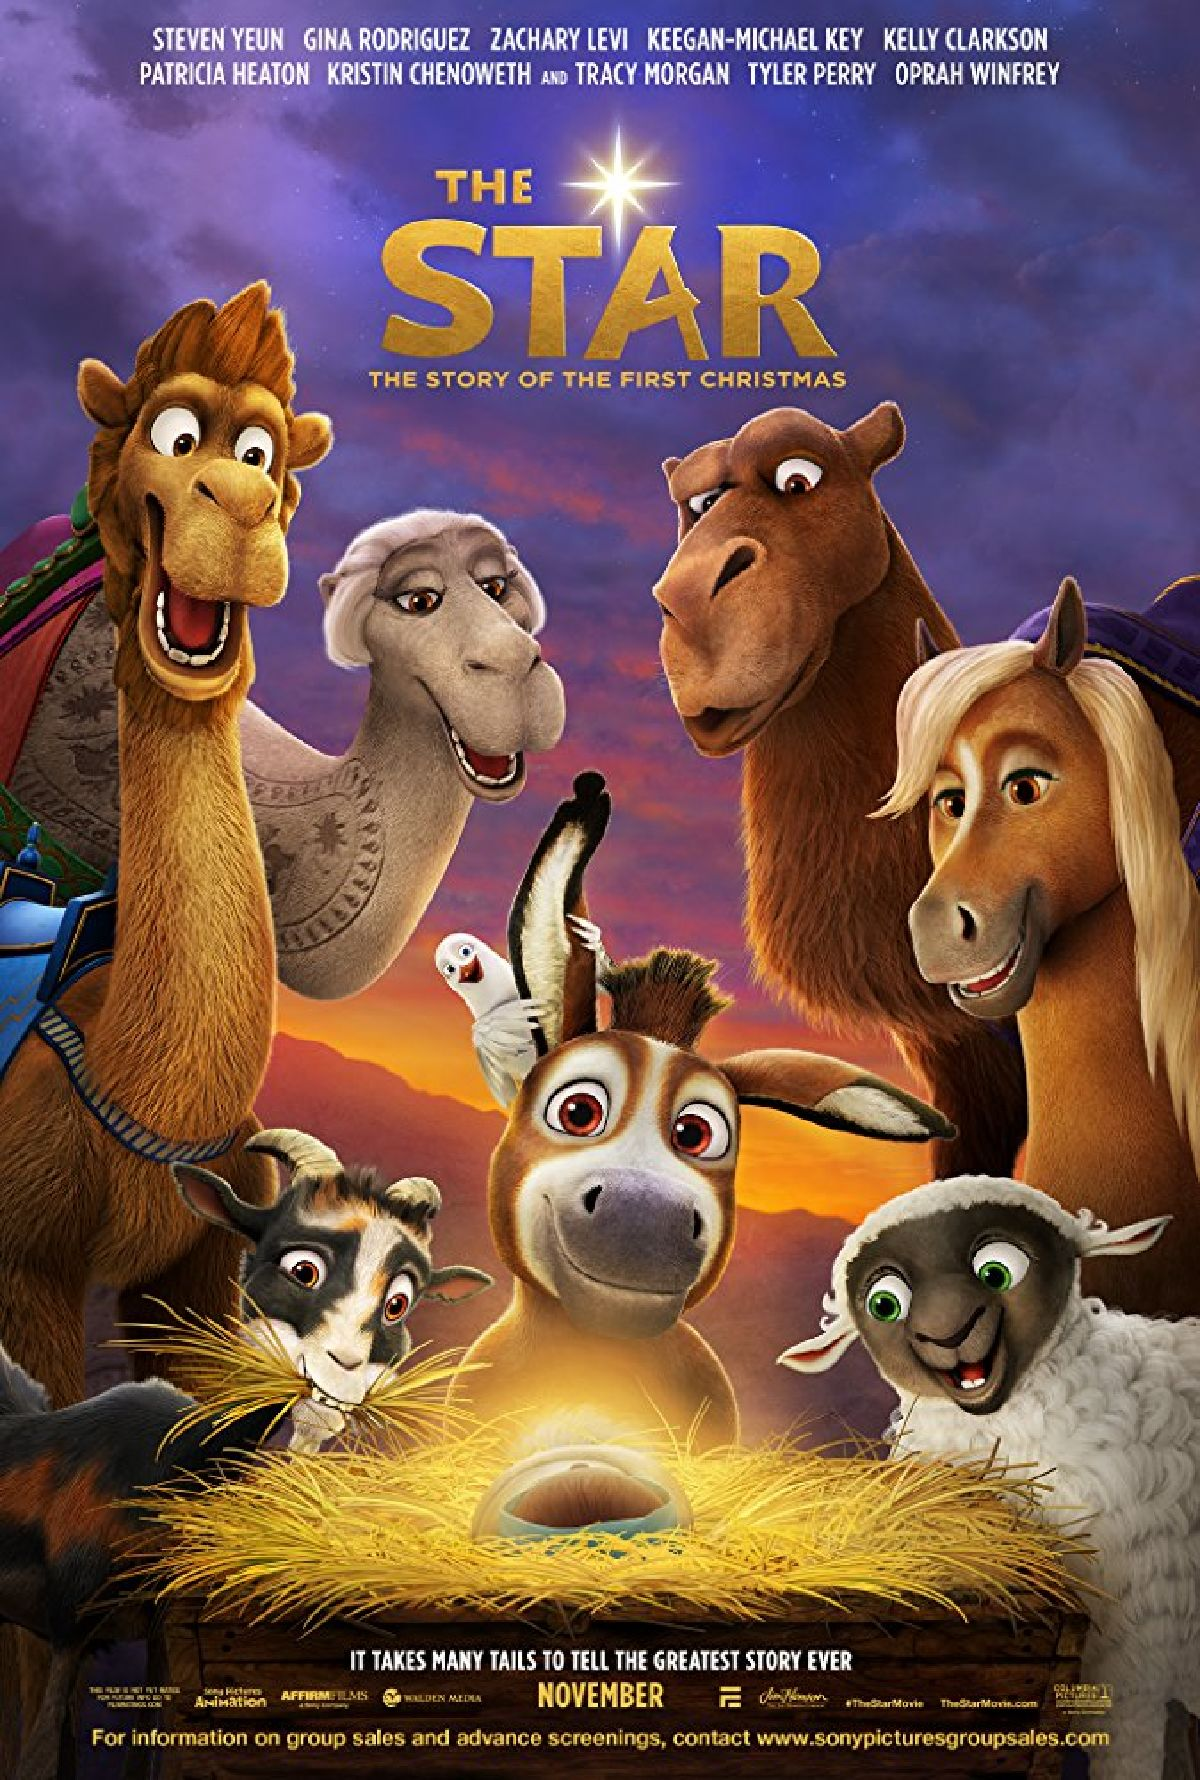 'The Star' movie poster